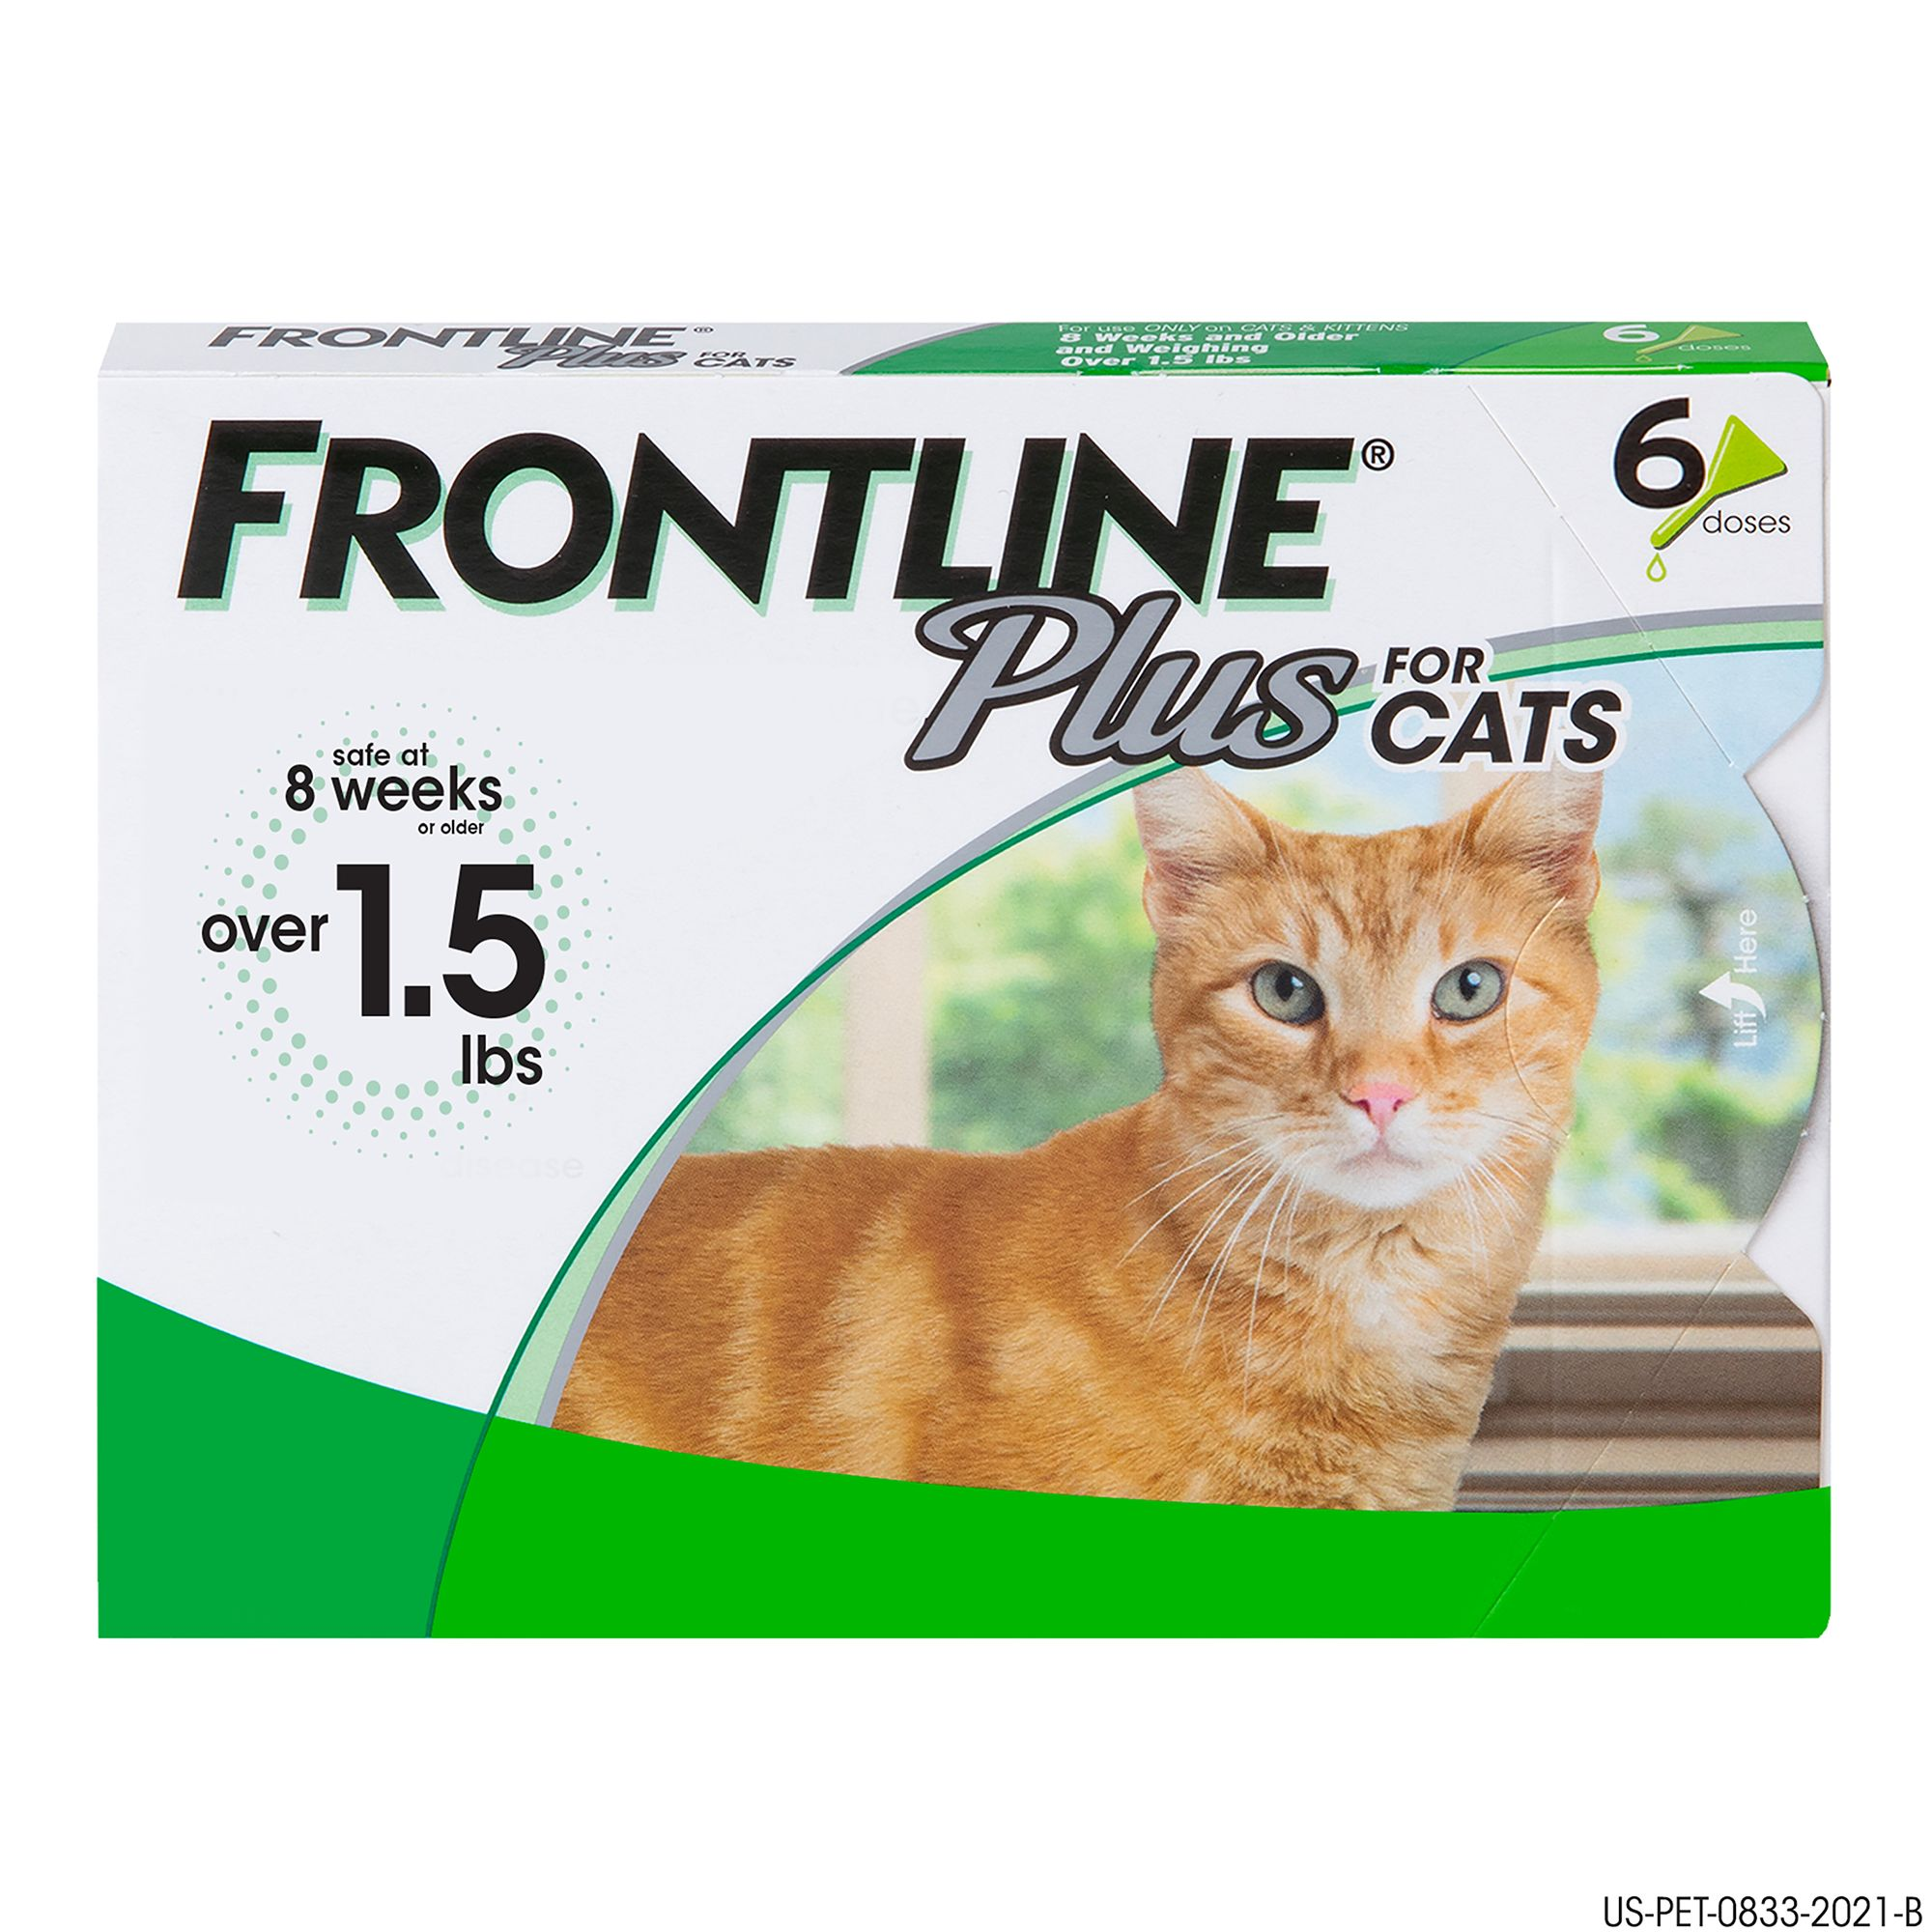 Frontline Plus Cat Flea and Tick Treatment size: 6 Count, 8 weeks or older